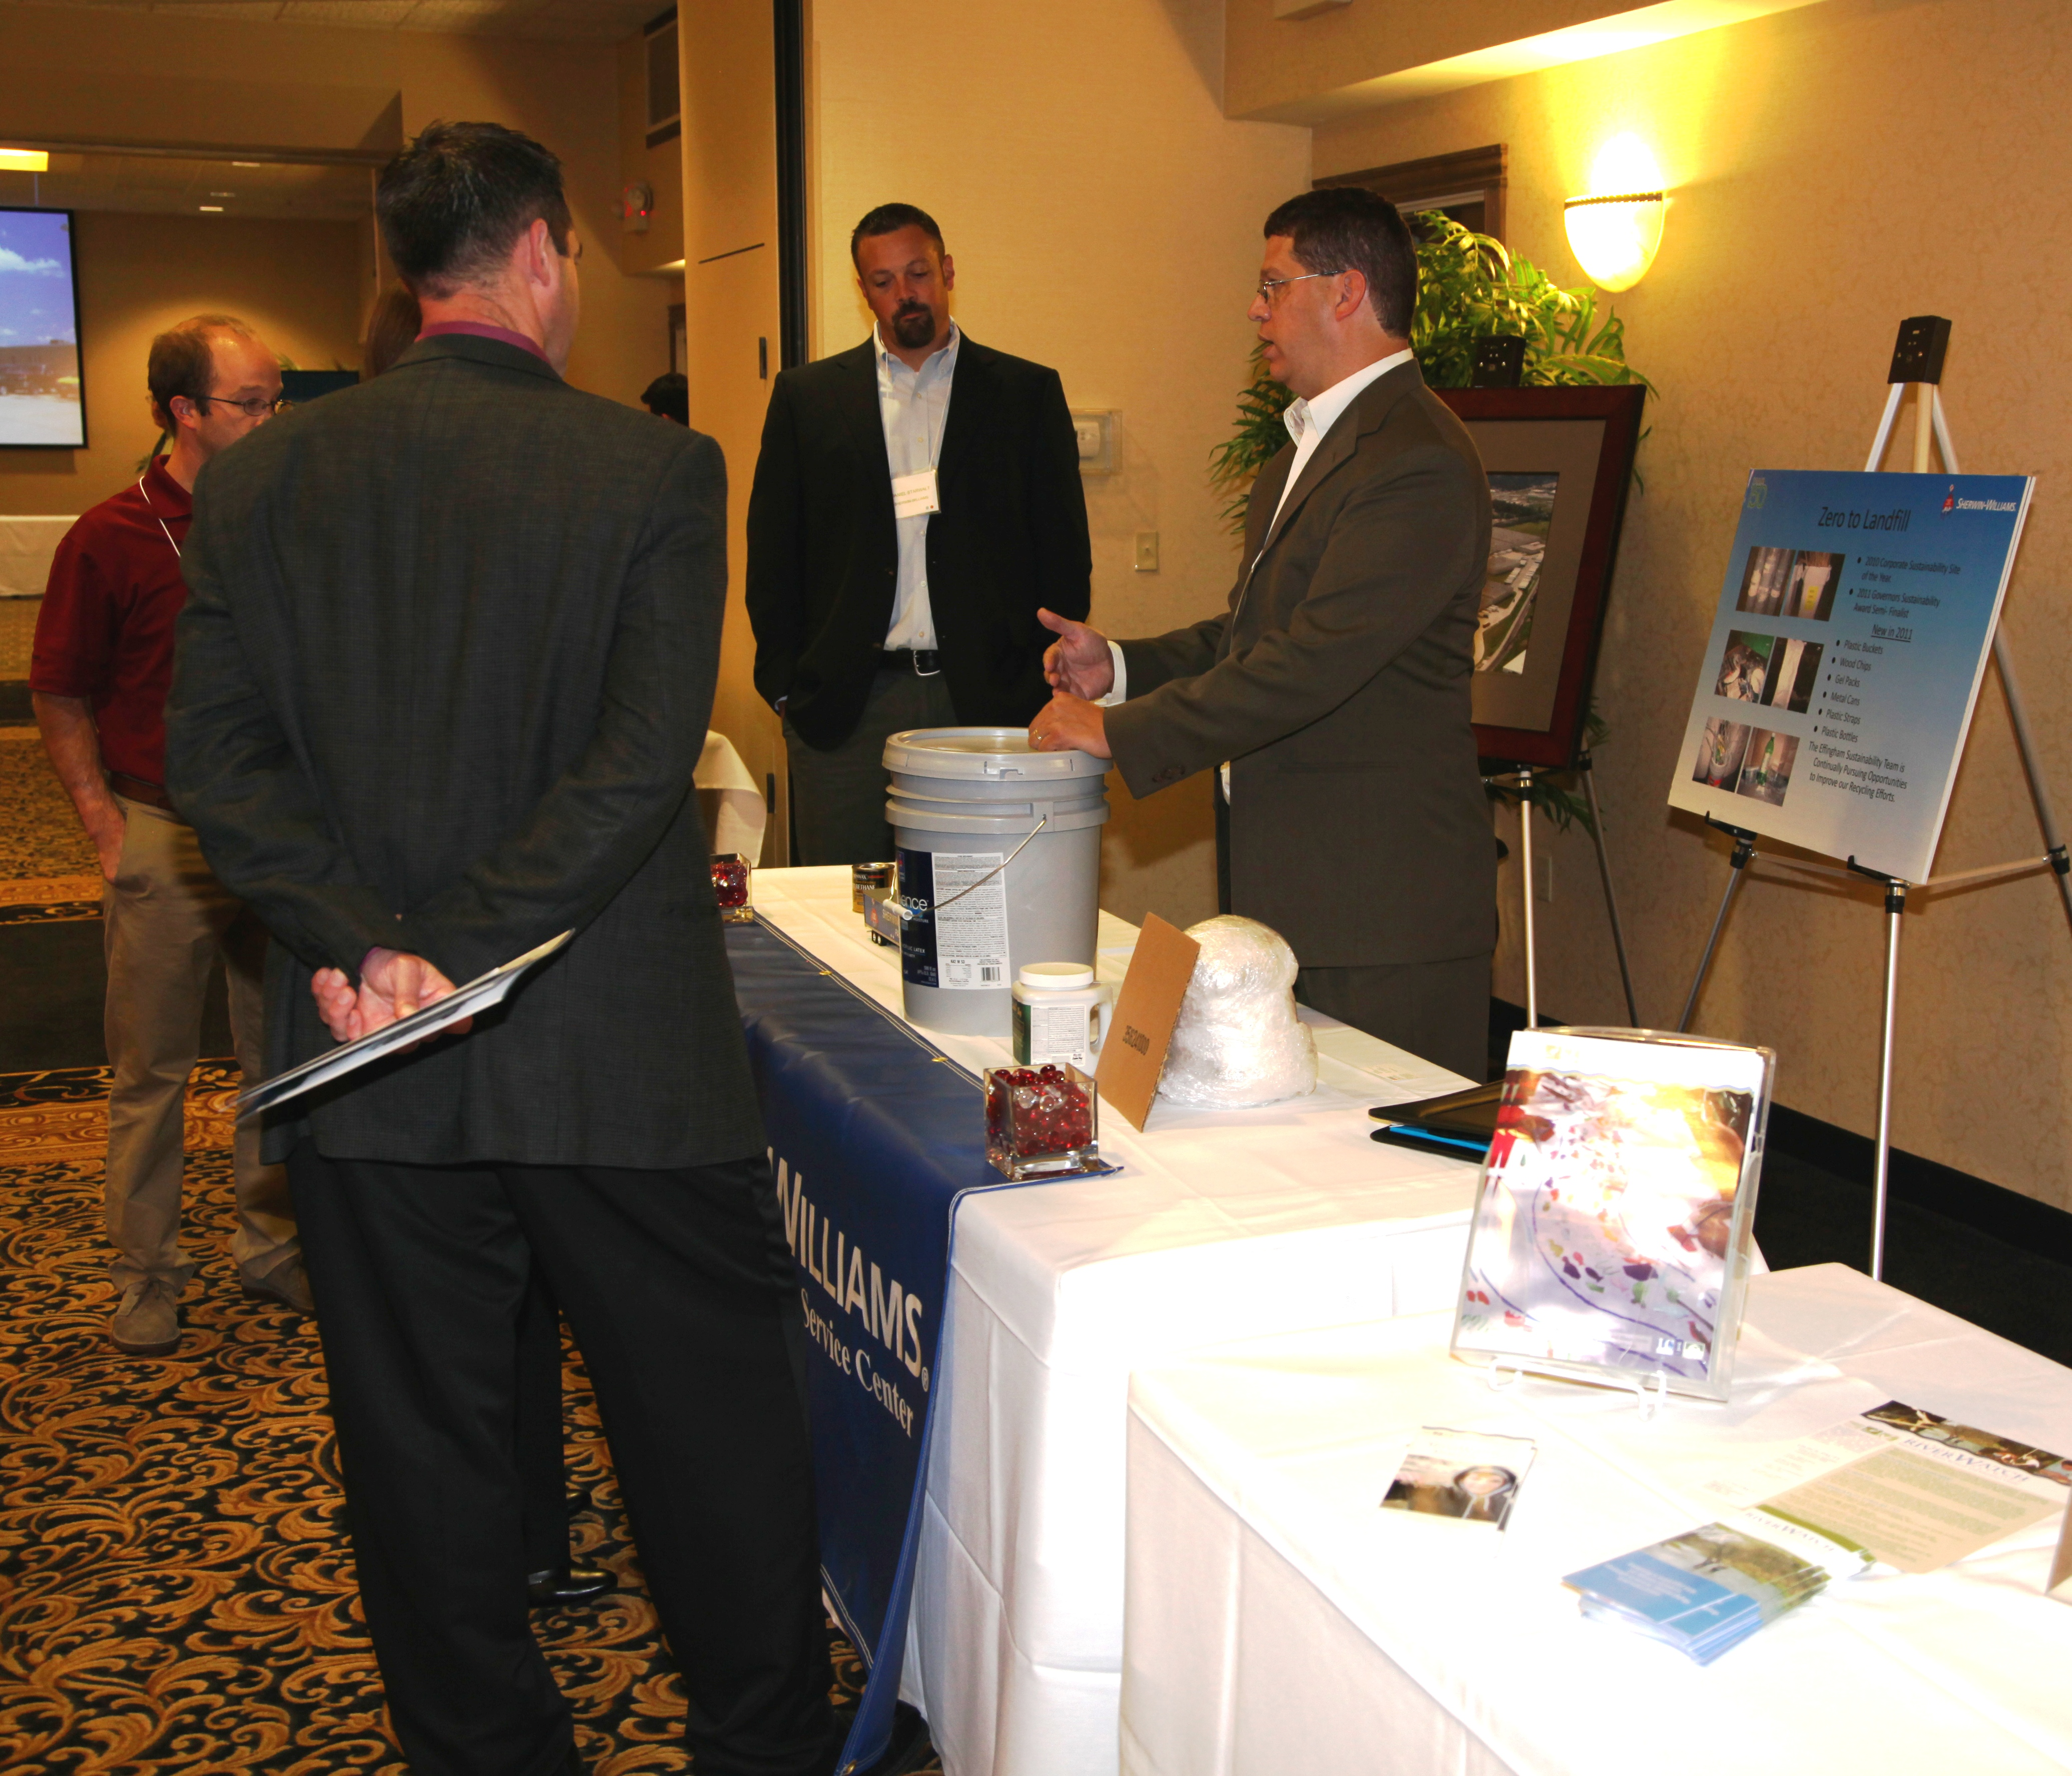 An exhibitor discusses his display with other participants